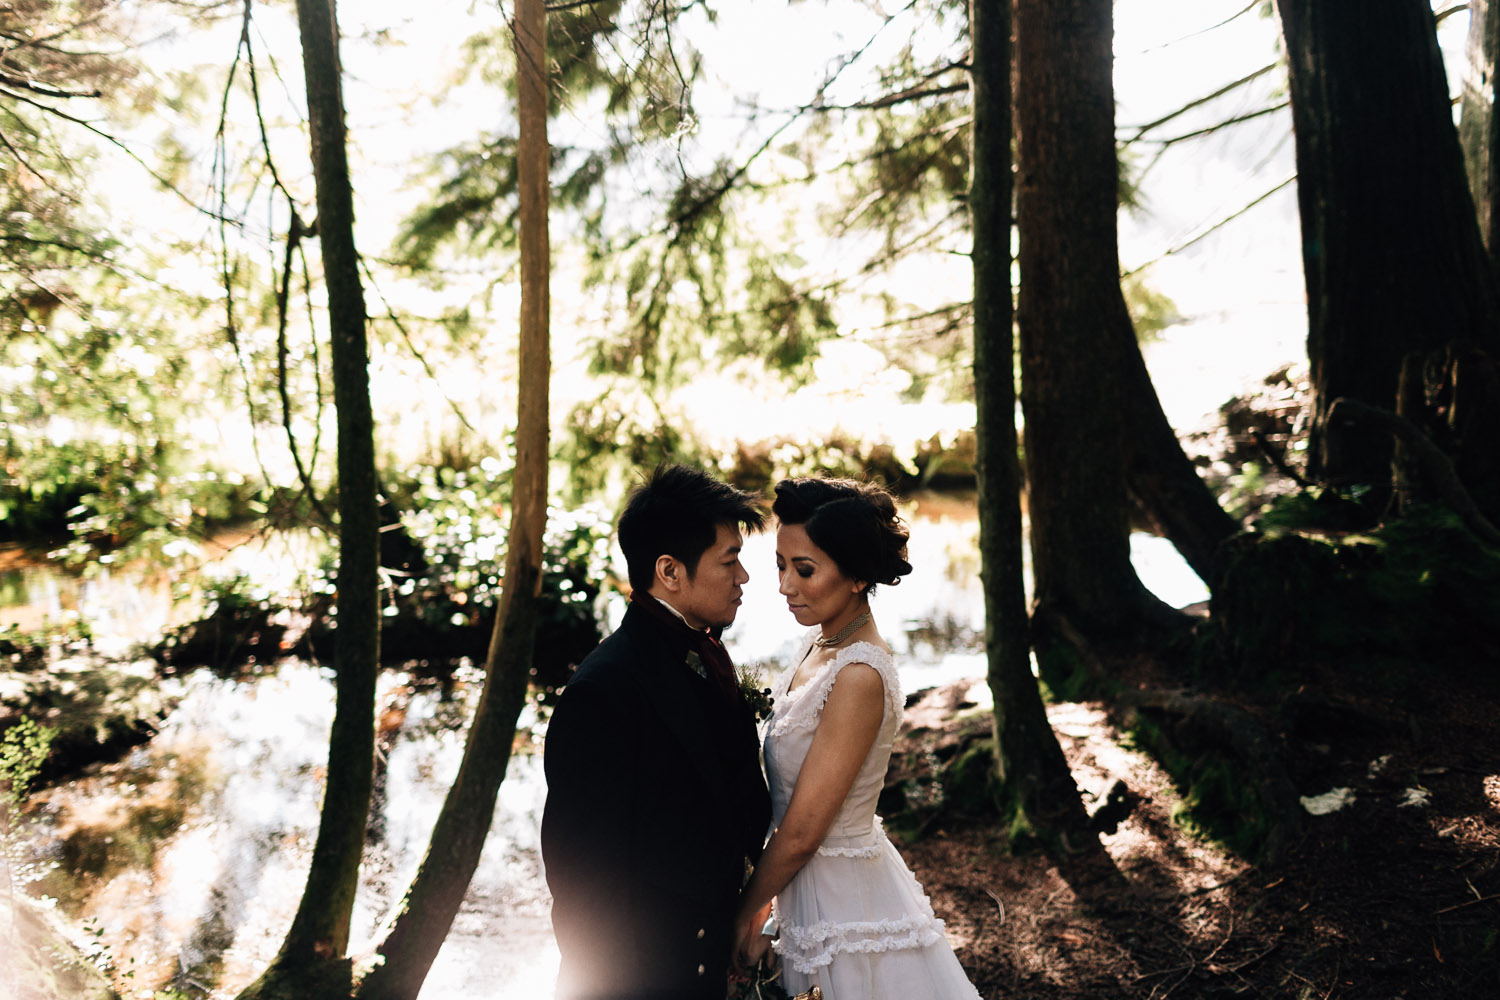 steampunk vintage wedding photographer vancouver noyo creative